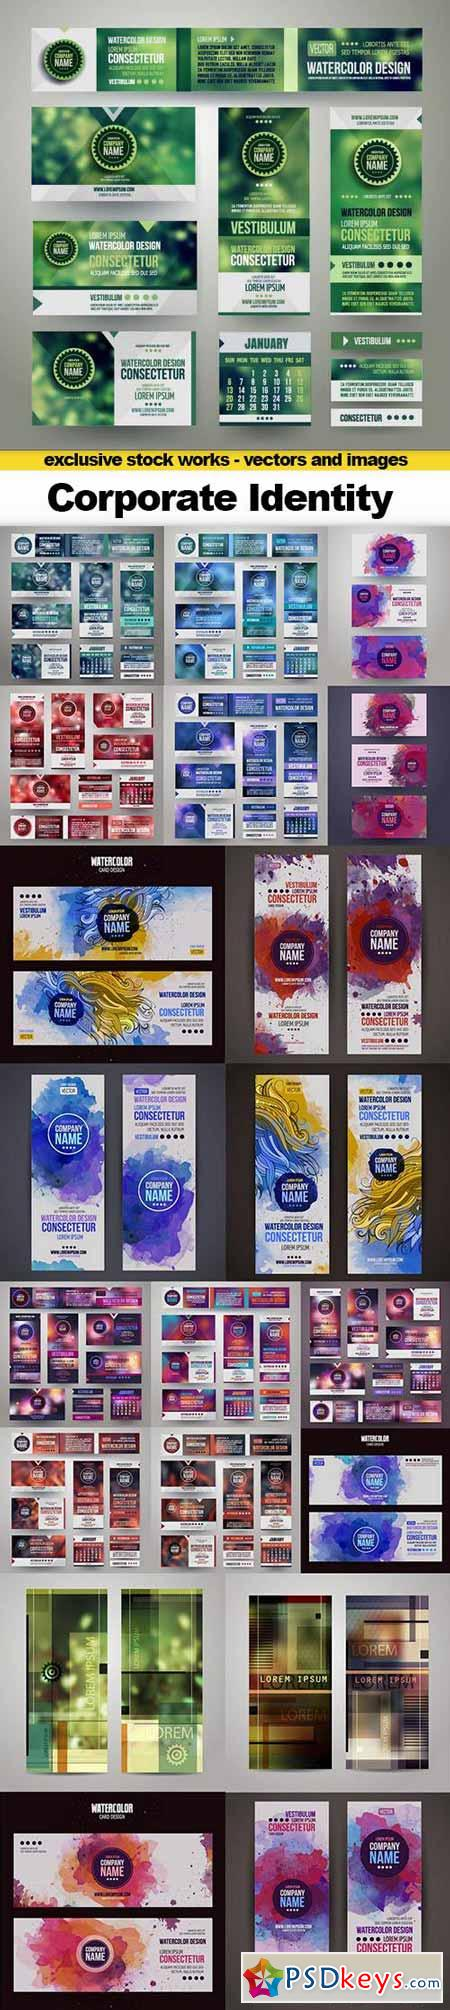 Corporate Identity Templates With Blurred Abstract Background, 21xEPS